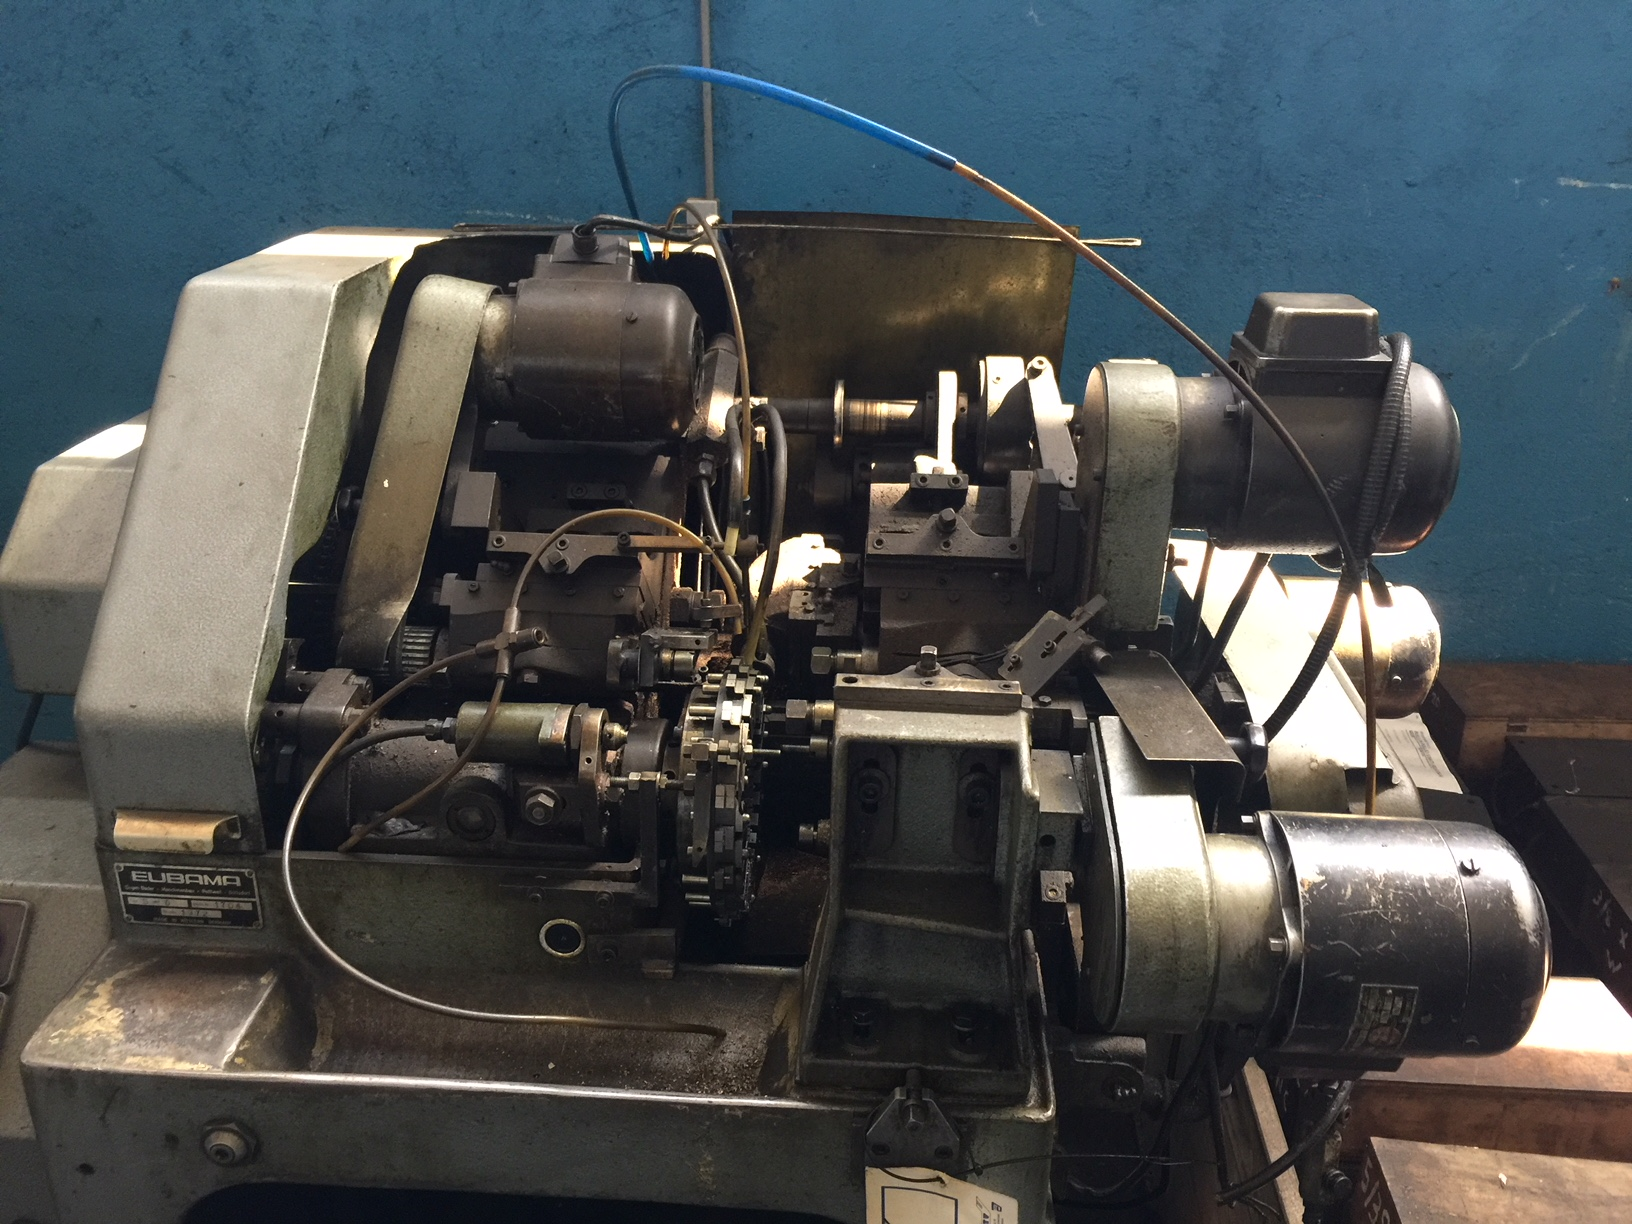 Lot 32 - Eubama Model S5 Transfer Machine